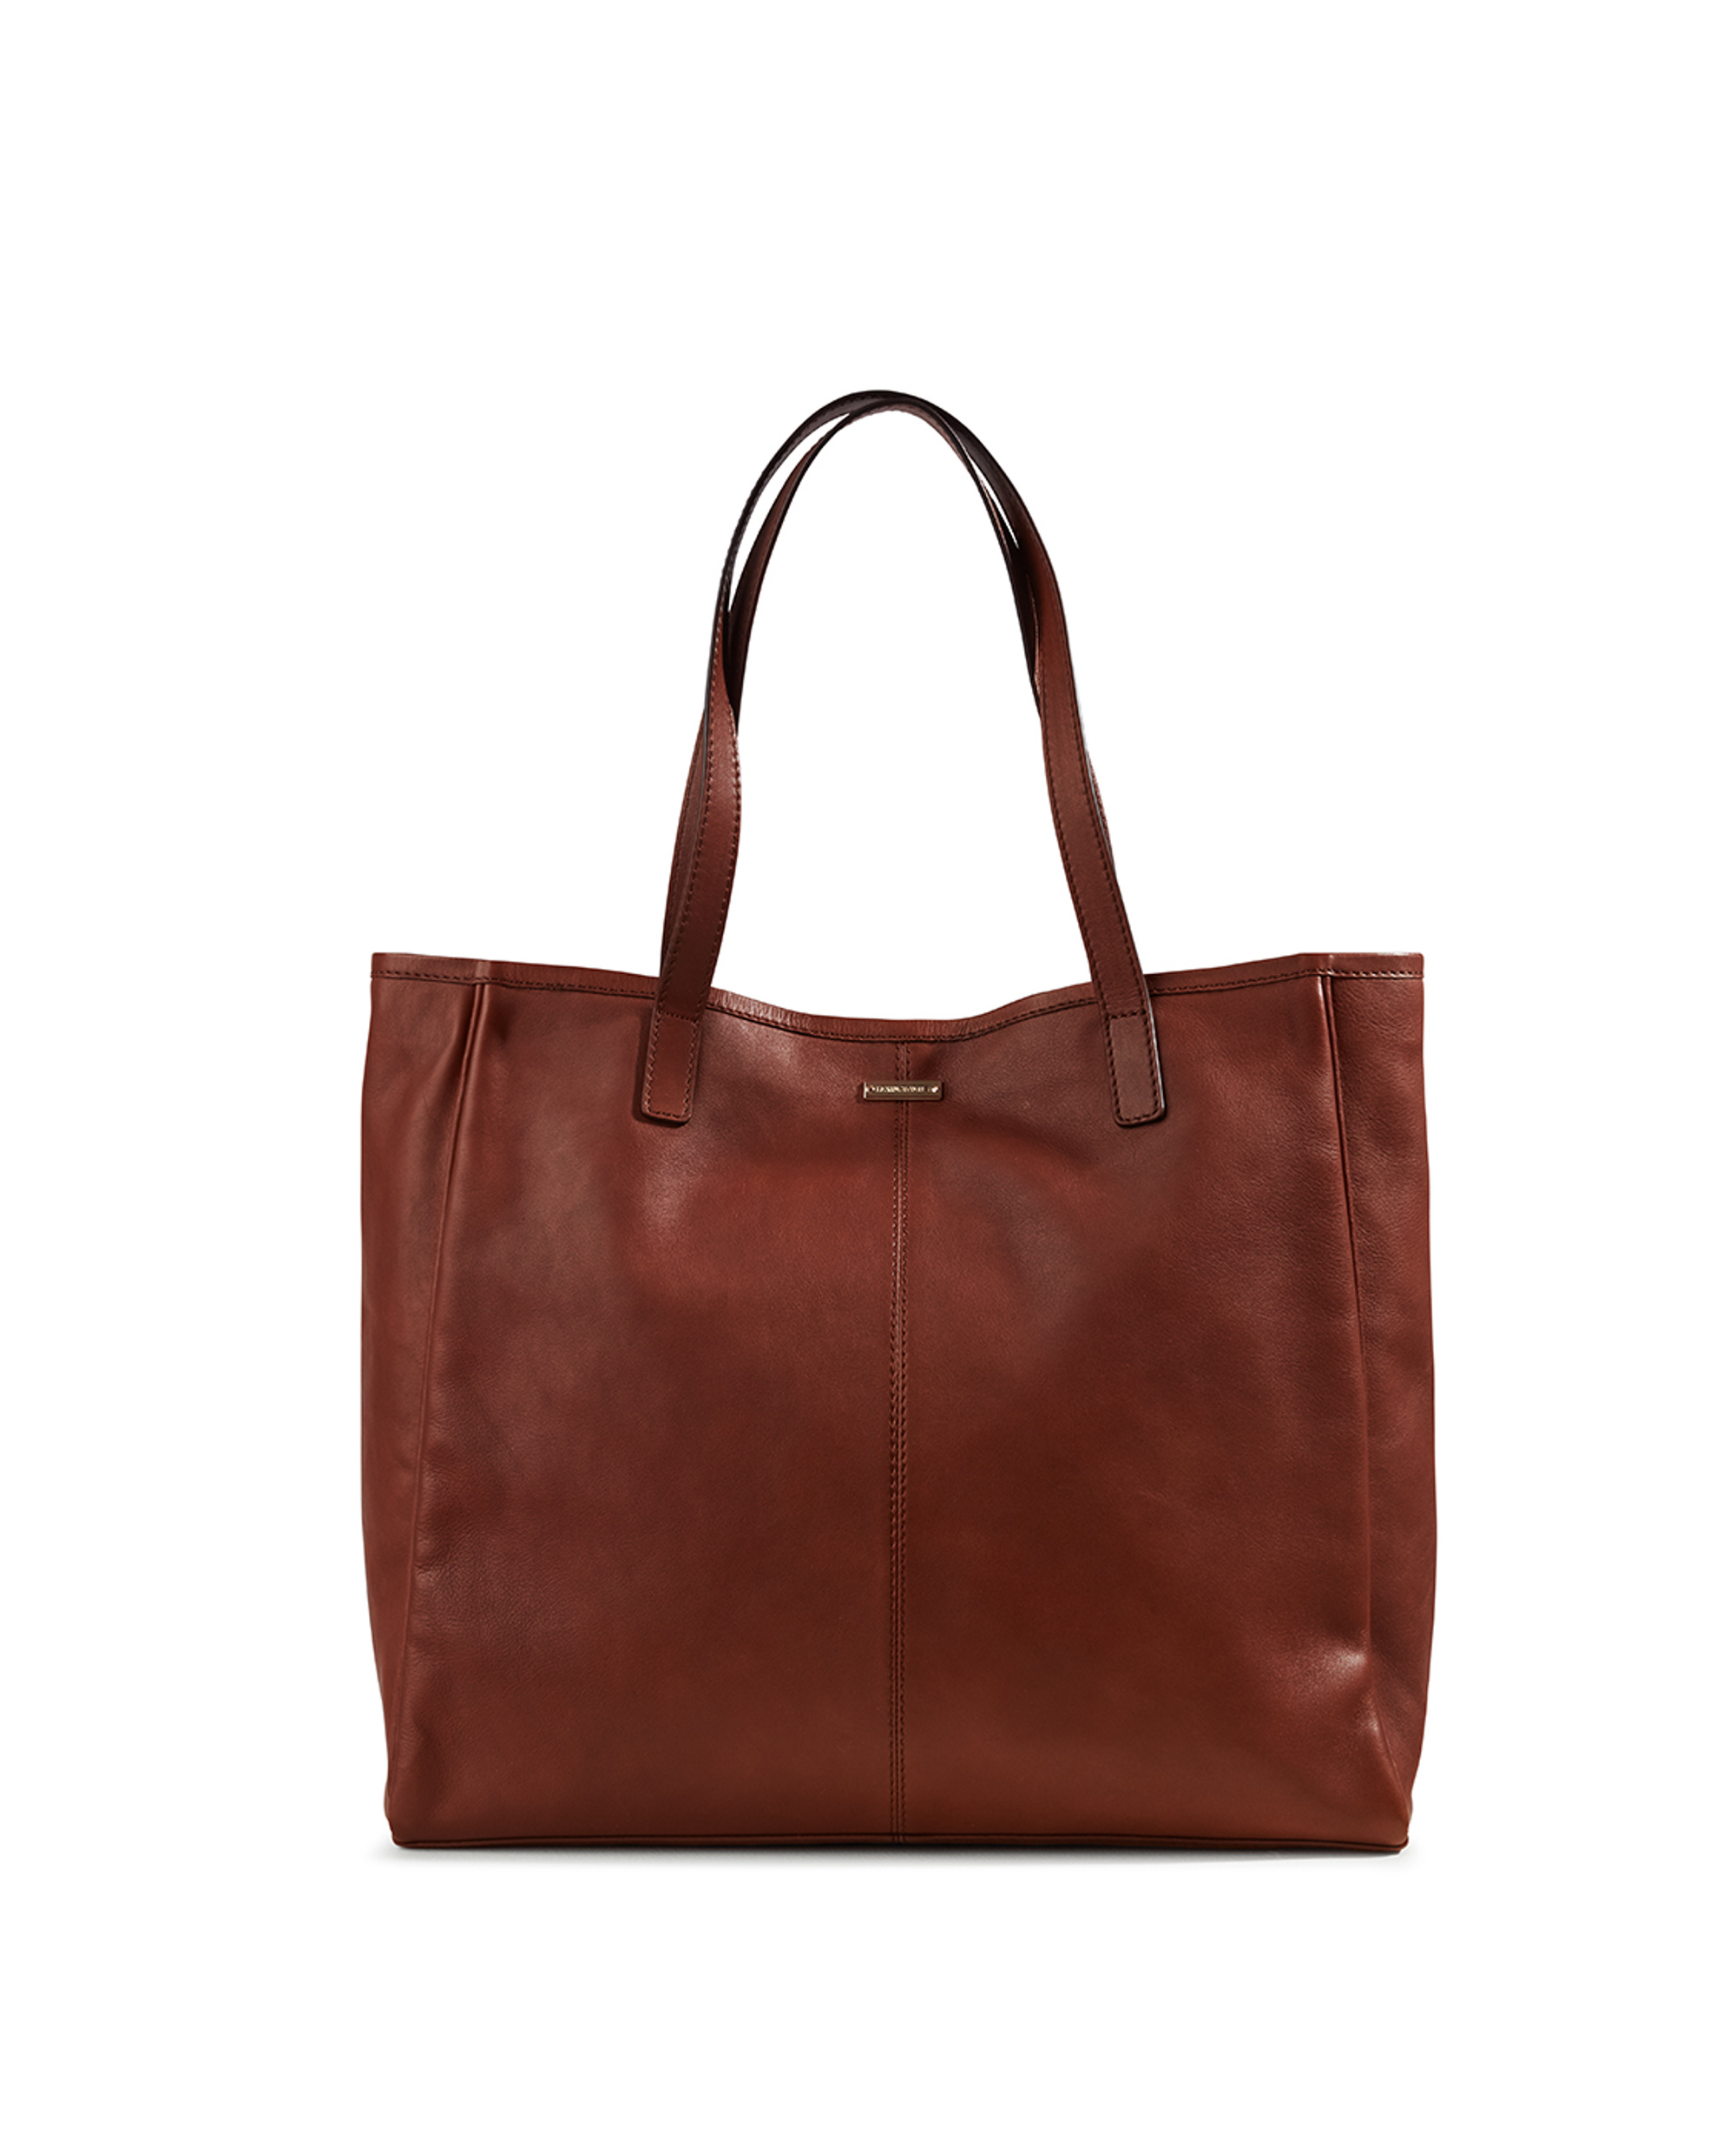 Wildflower Leather Tote Bag